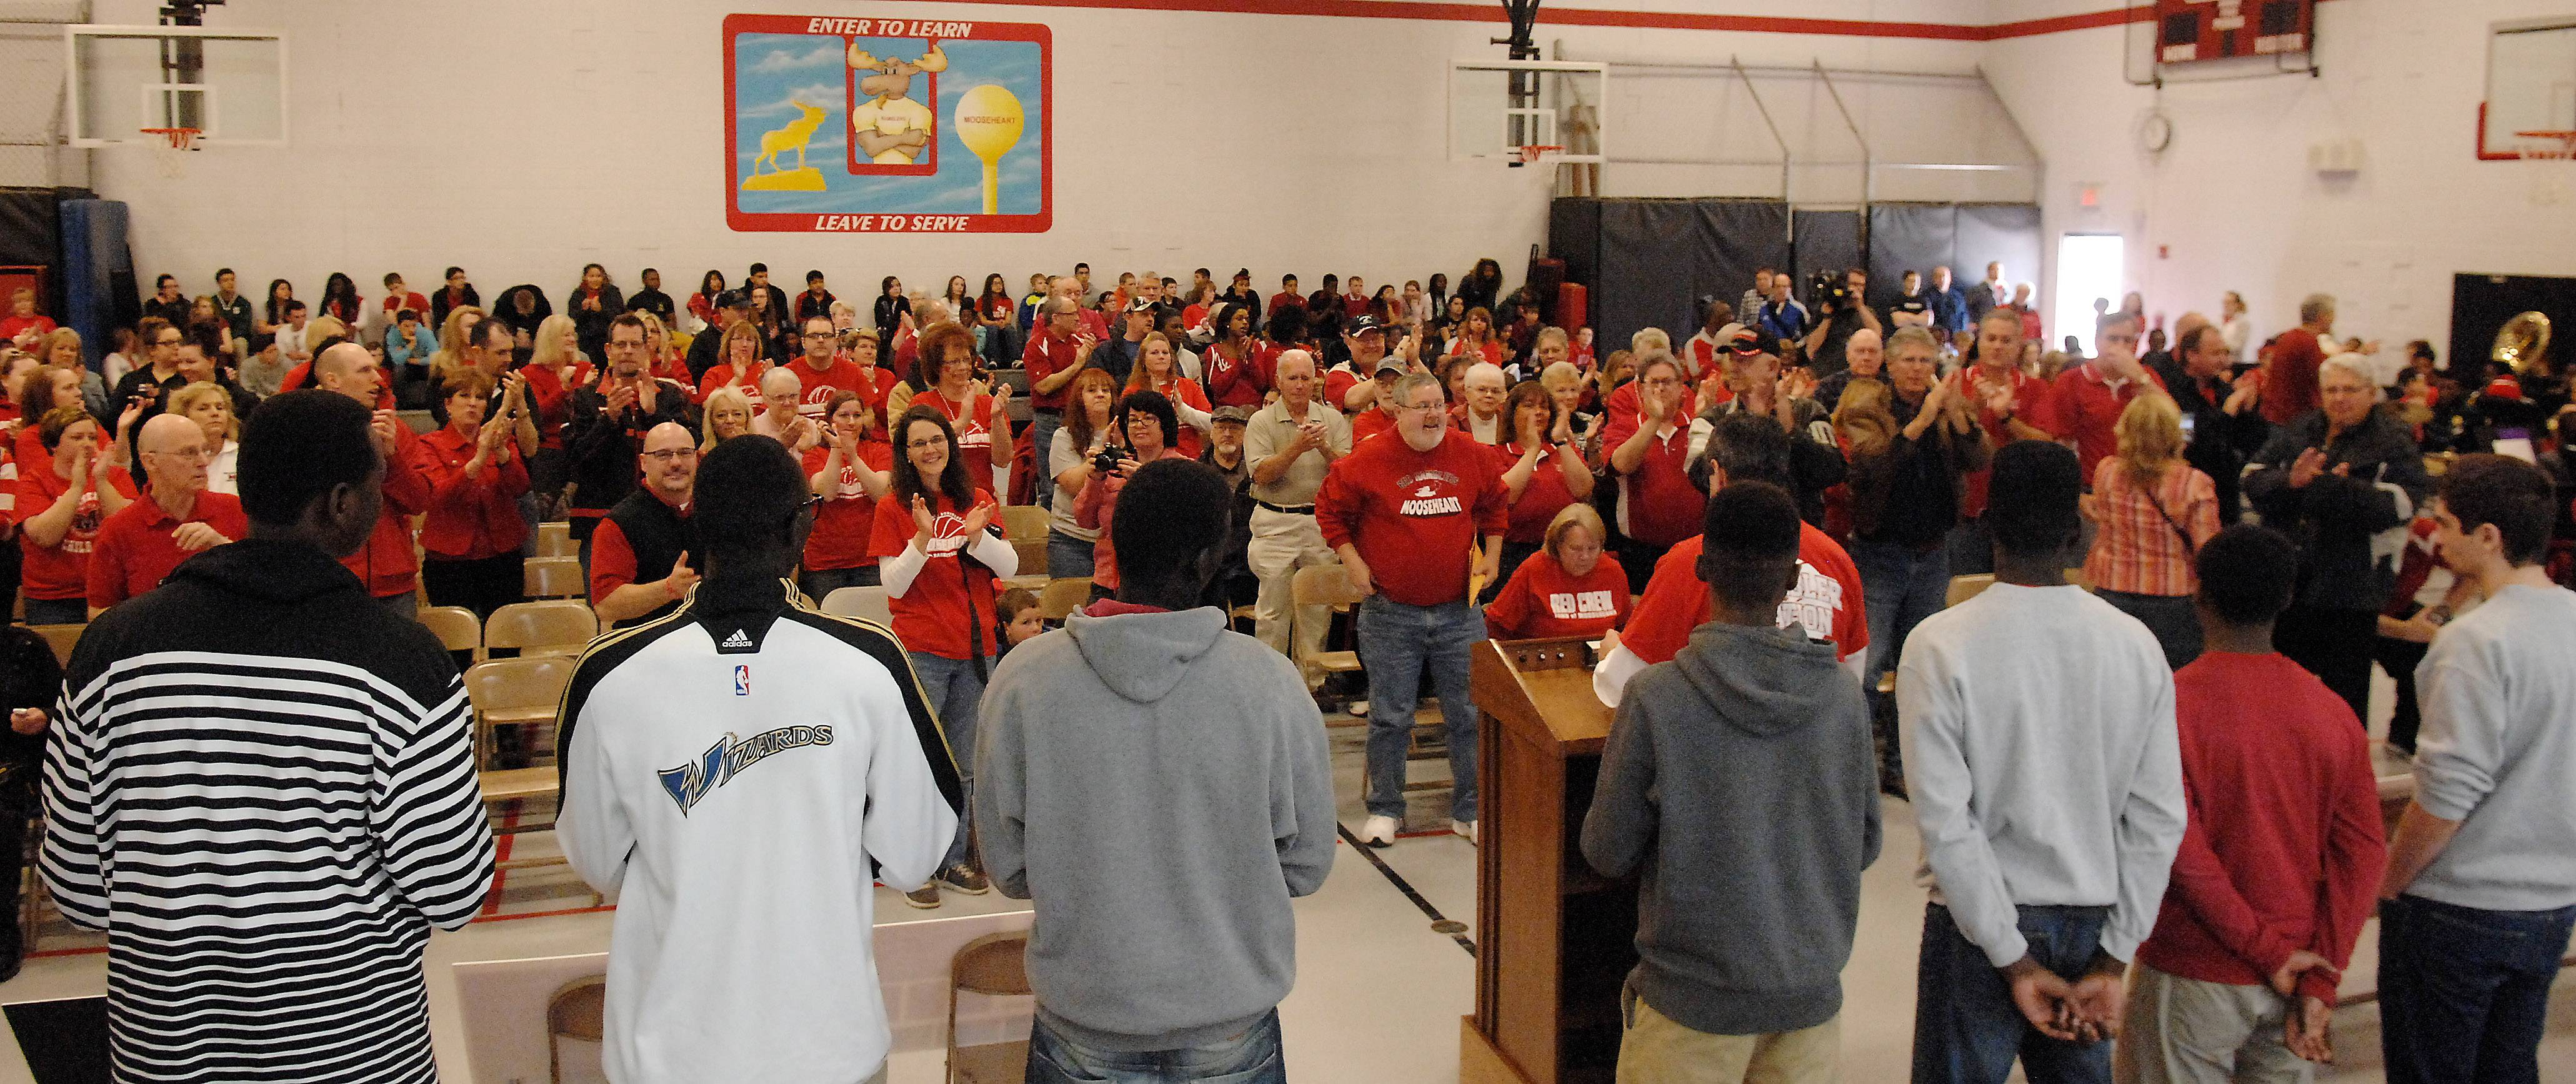 The Class 1A state champion basketball team gets a standing ovation during a ceremony for state qualifying athletes in fall and winter sports Friday at Mooseheart.